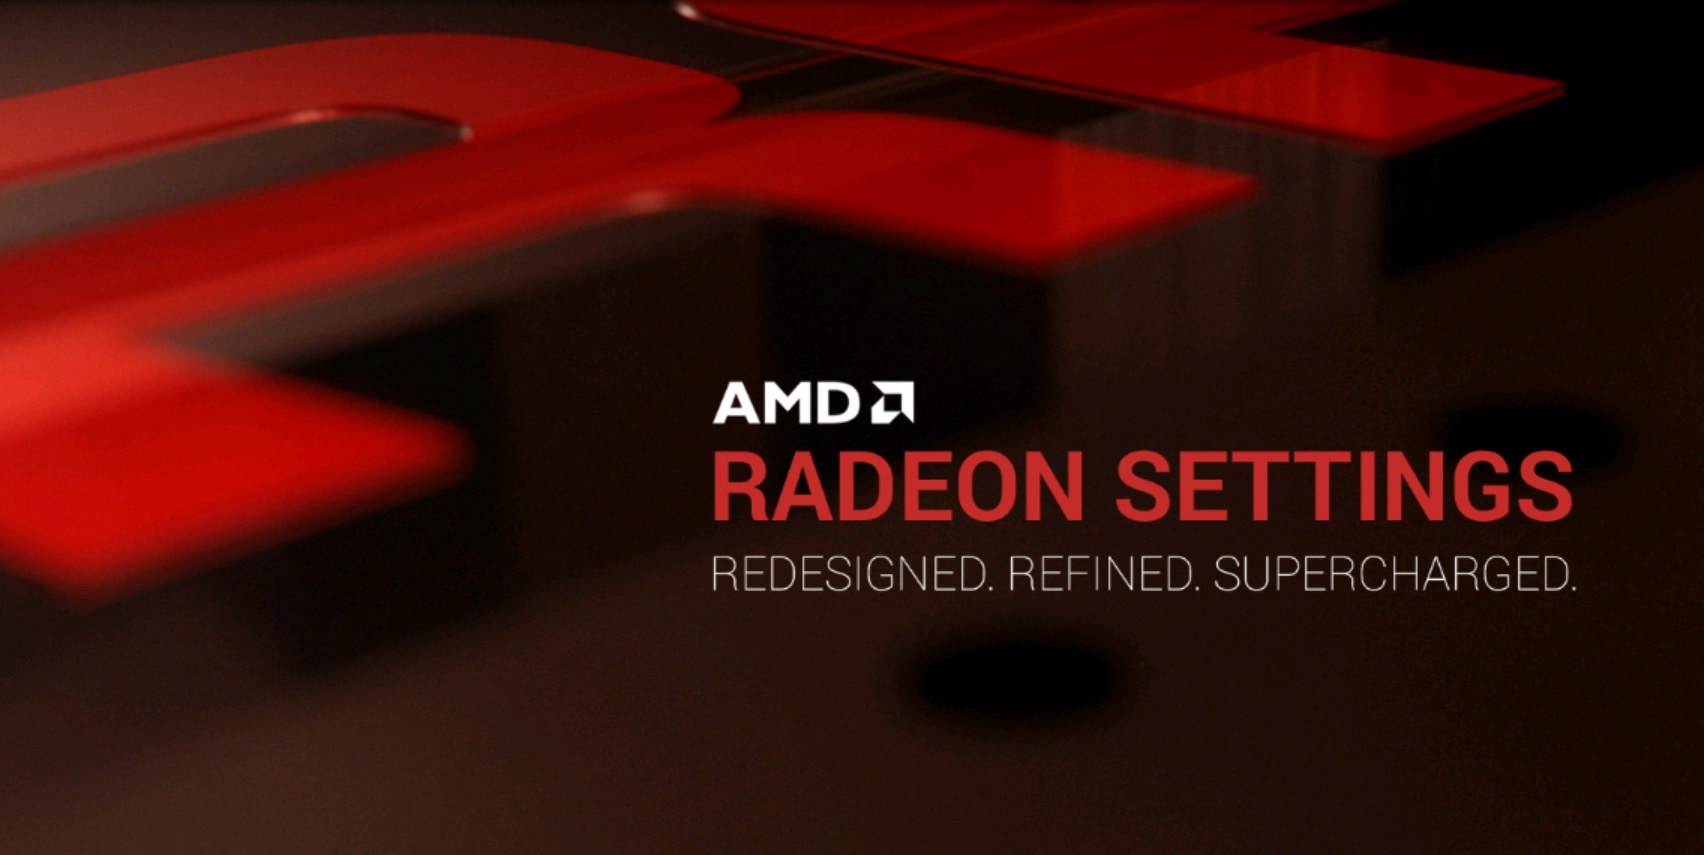 amd adrenalin compute mode enabled